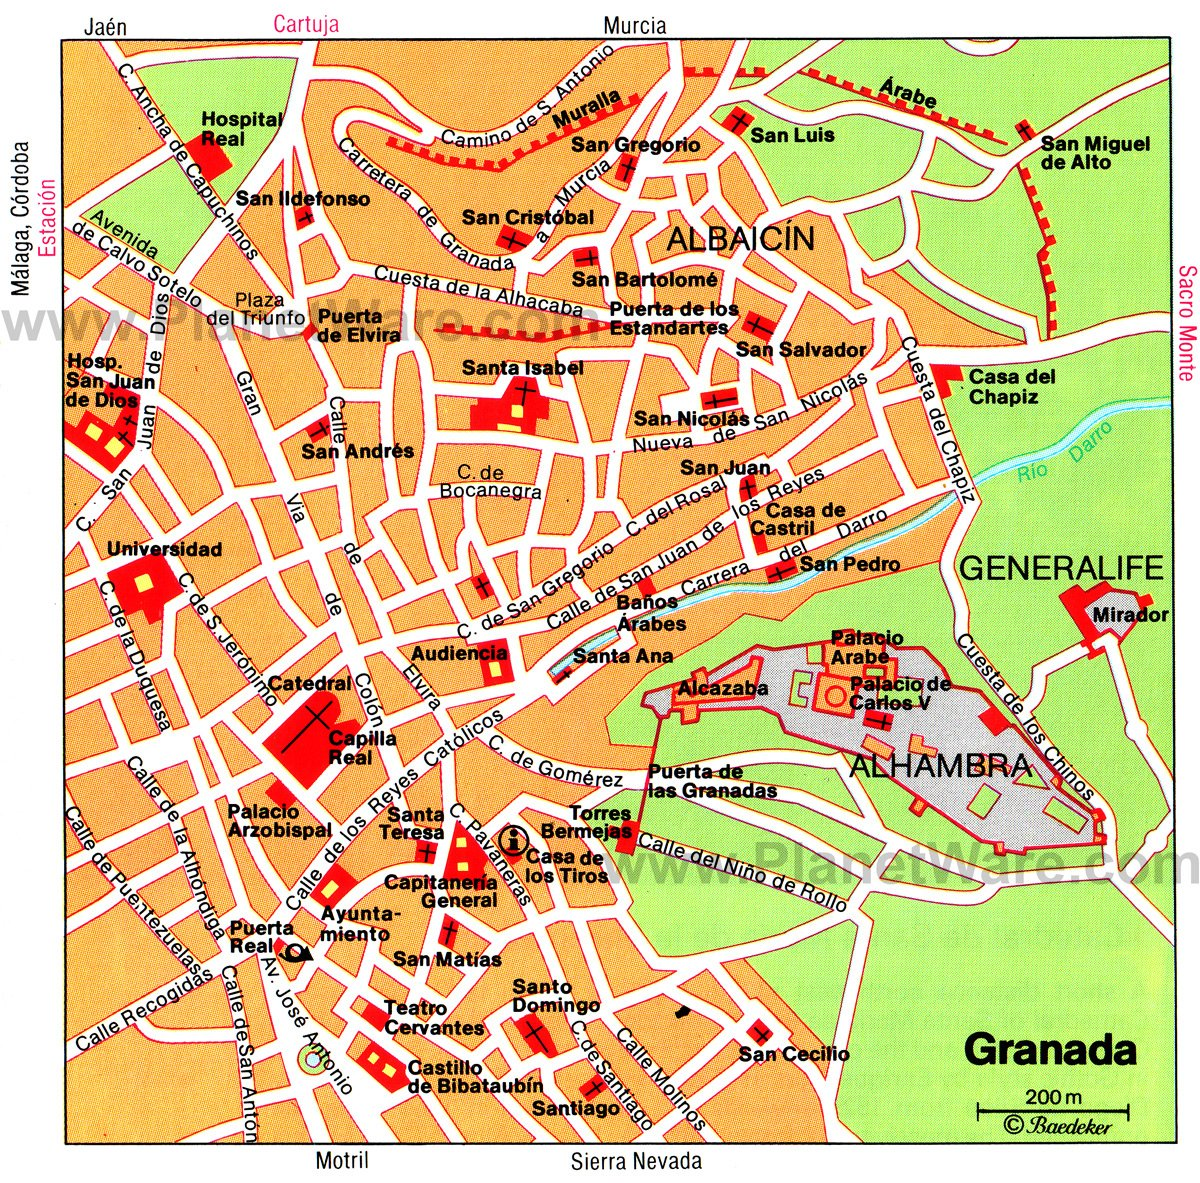 toprated tourist attractions in granada  planetware - granada map  tourist attractions